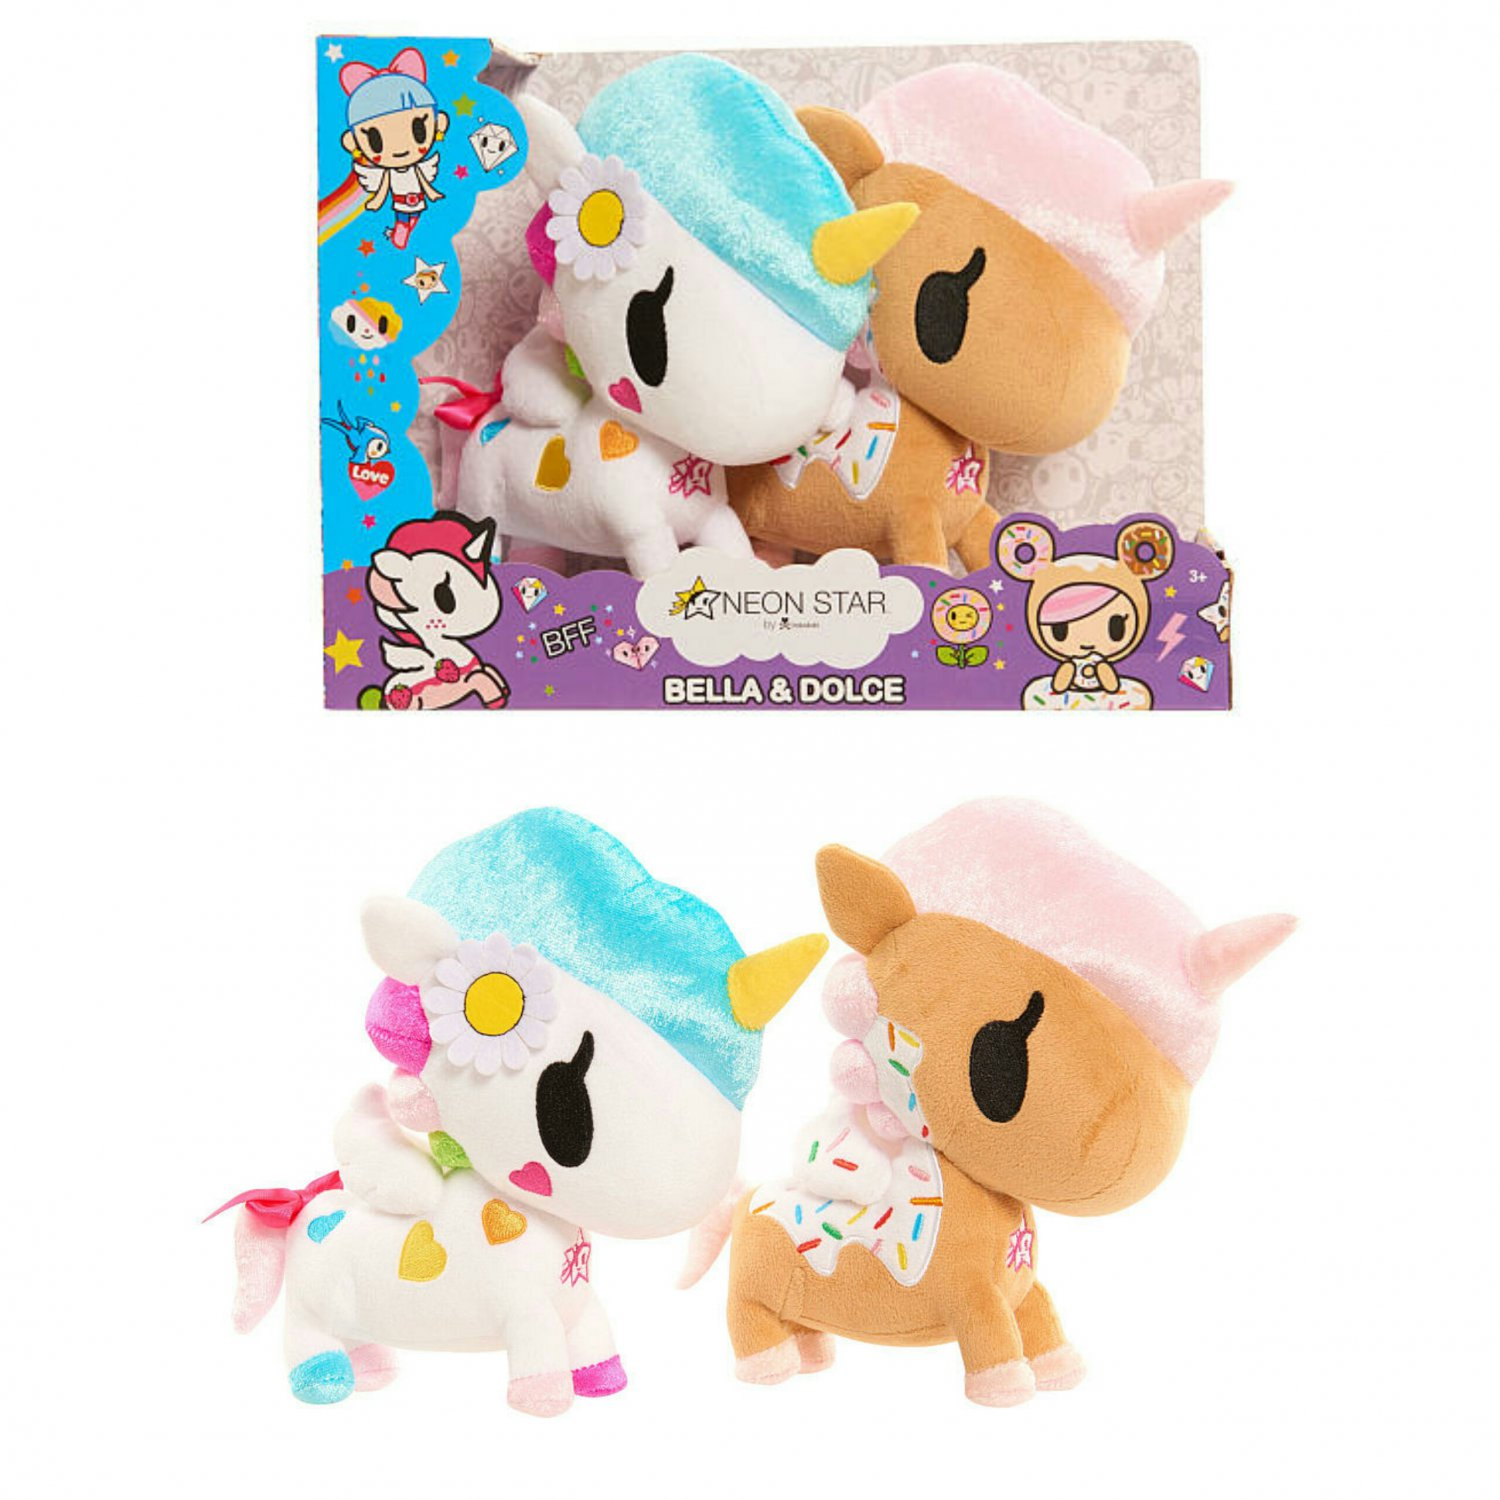 Neon Star by Tokidoki 2 Pack Plush Figures - Belle & Unicorno Dolce